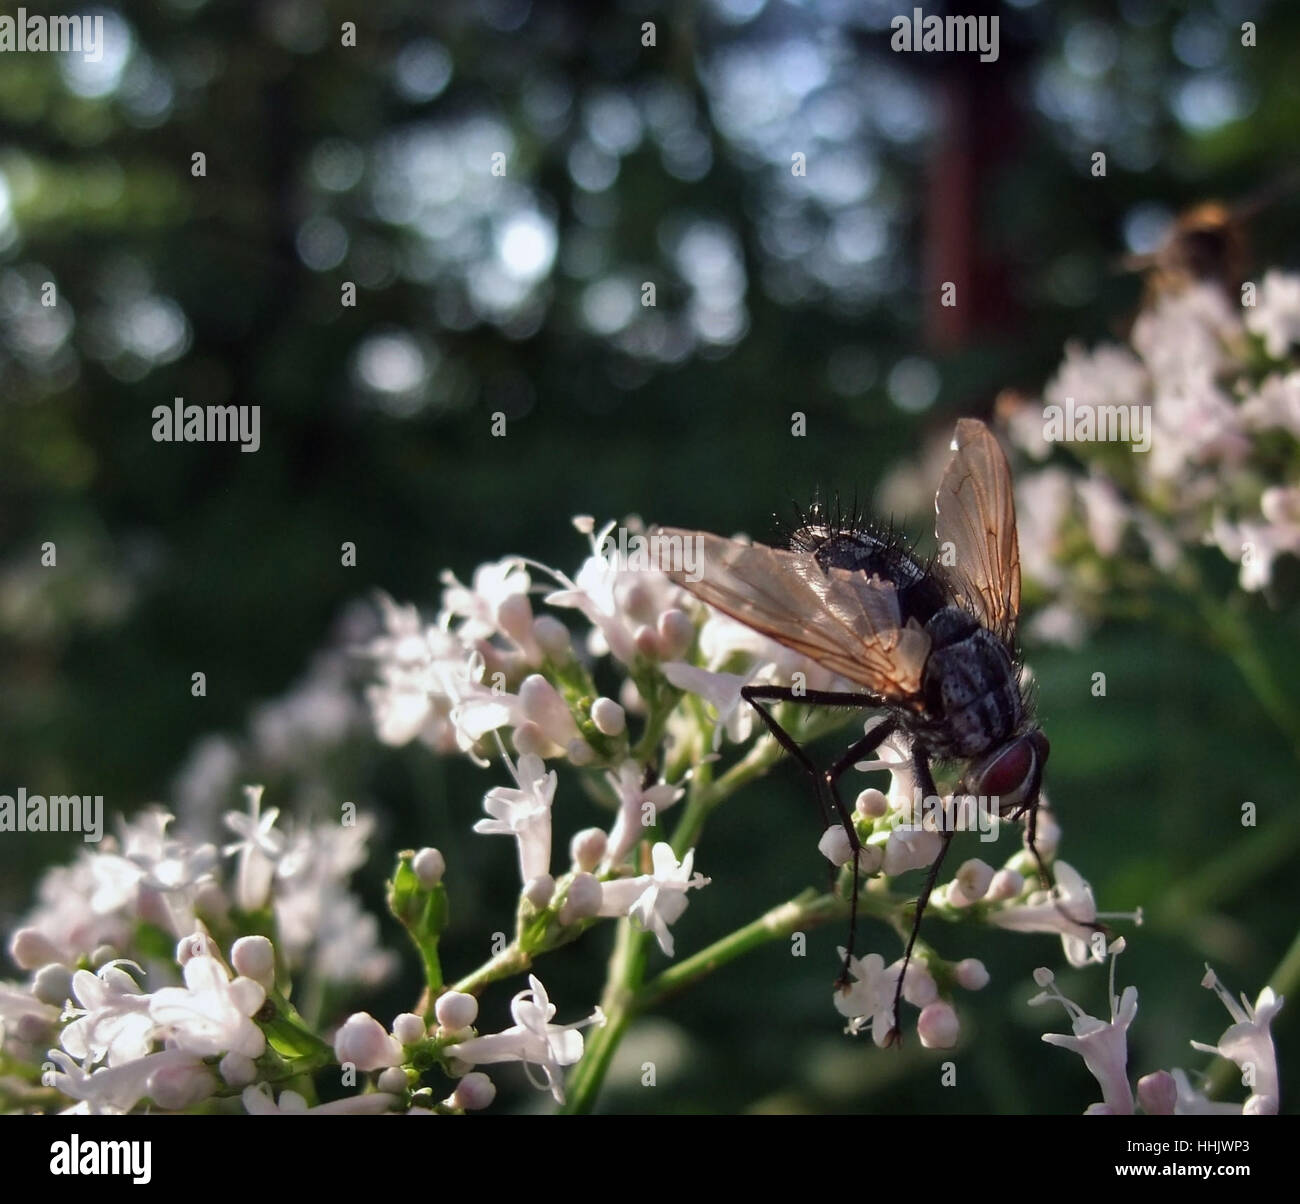 a flesh-fly sitting on pastel toned small flowers in blurry back - Stock Image